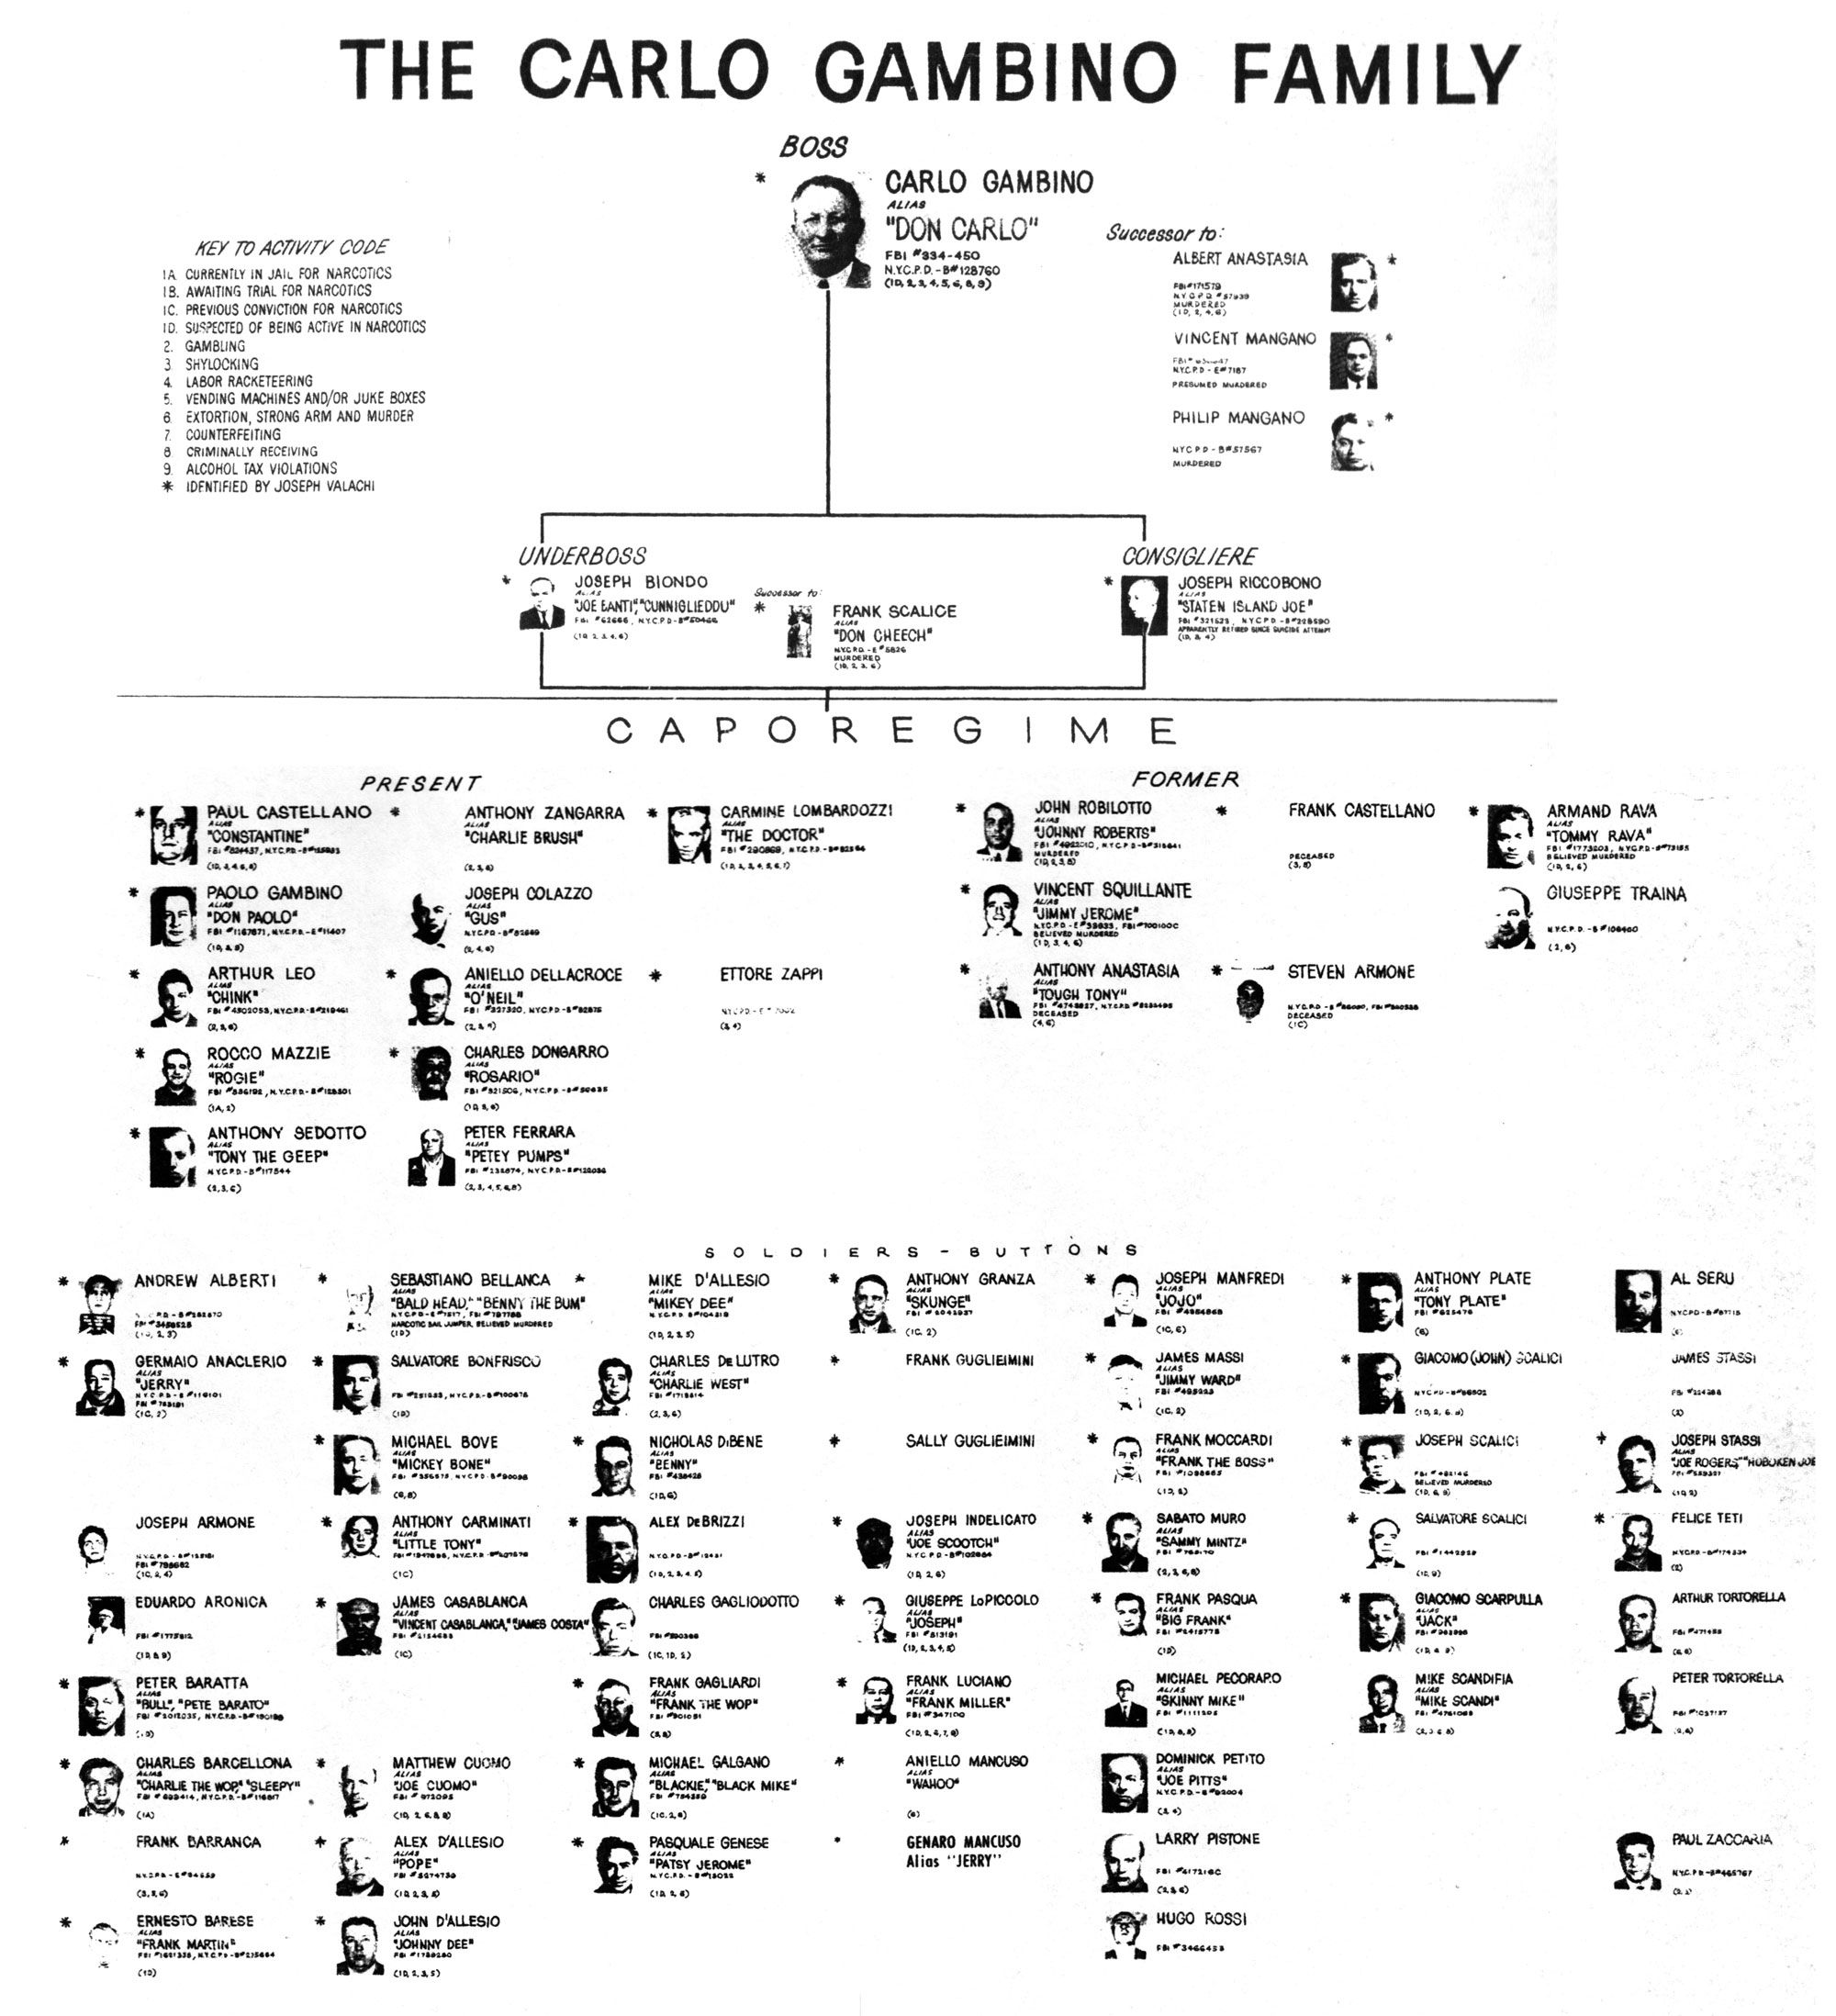 The Corleone Family by skybender on DeviantArt  |Corleone Crime Family Tree